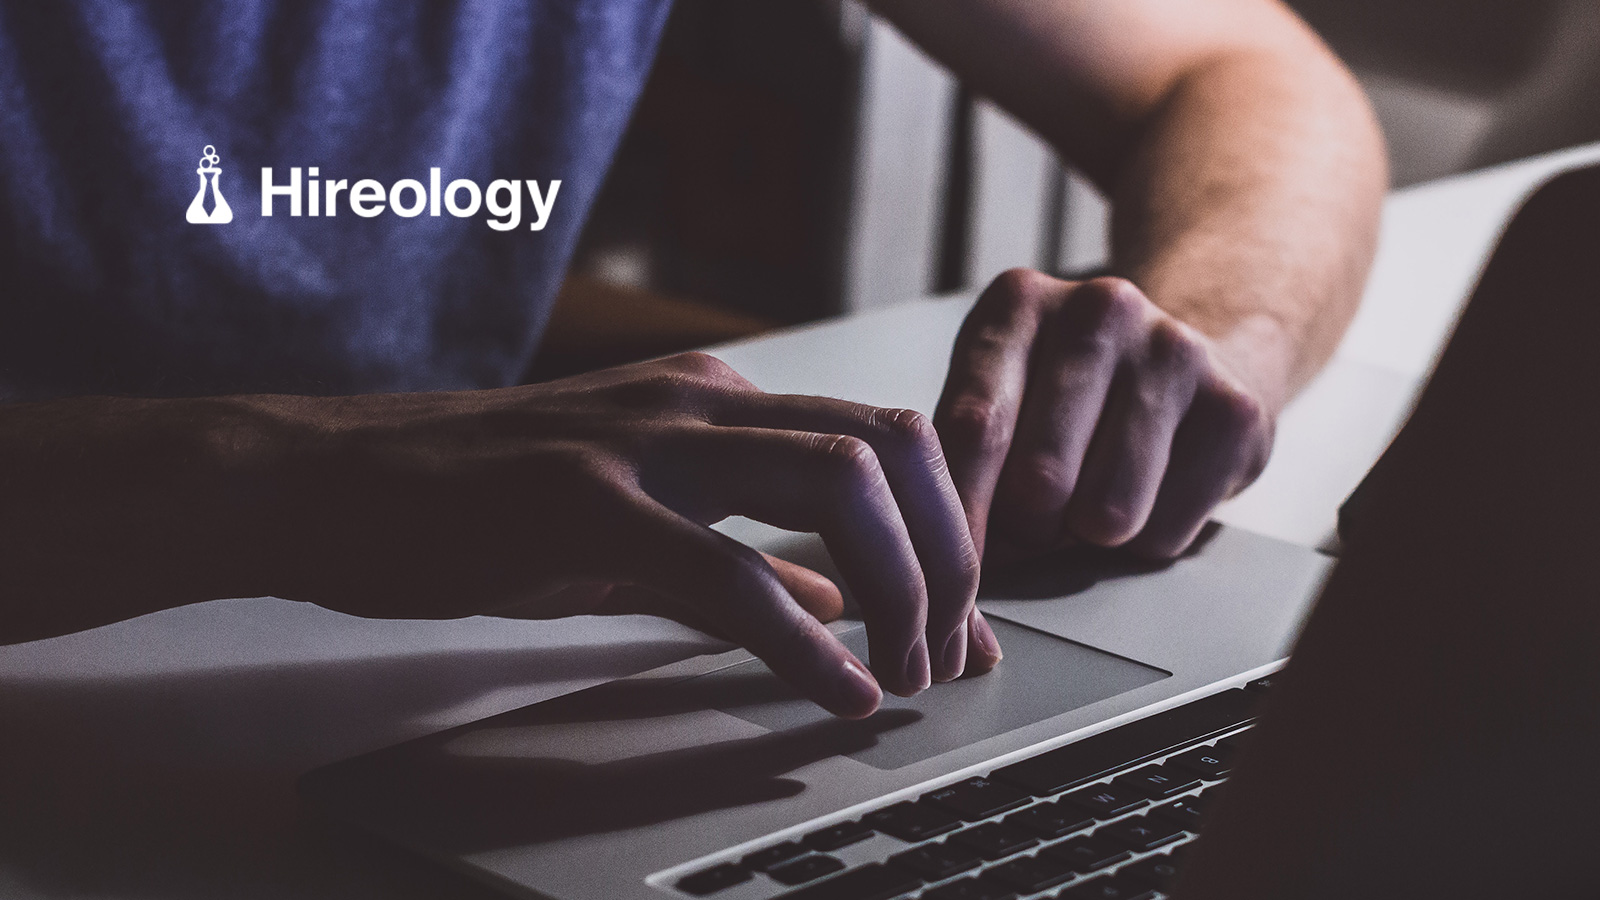 Hireology Transforms How Dealers Attract, Hire and Integrate Top Talent, Launching the First Recruitment CRM Platform at NADA 2019